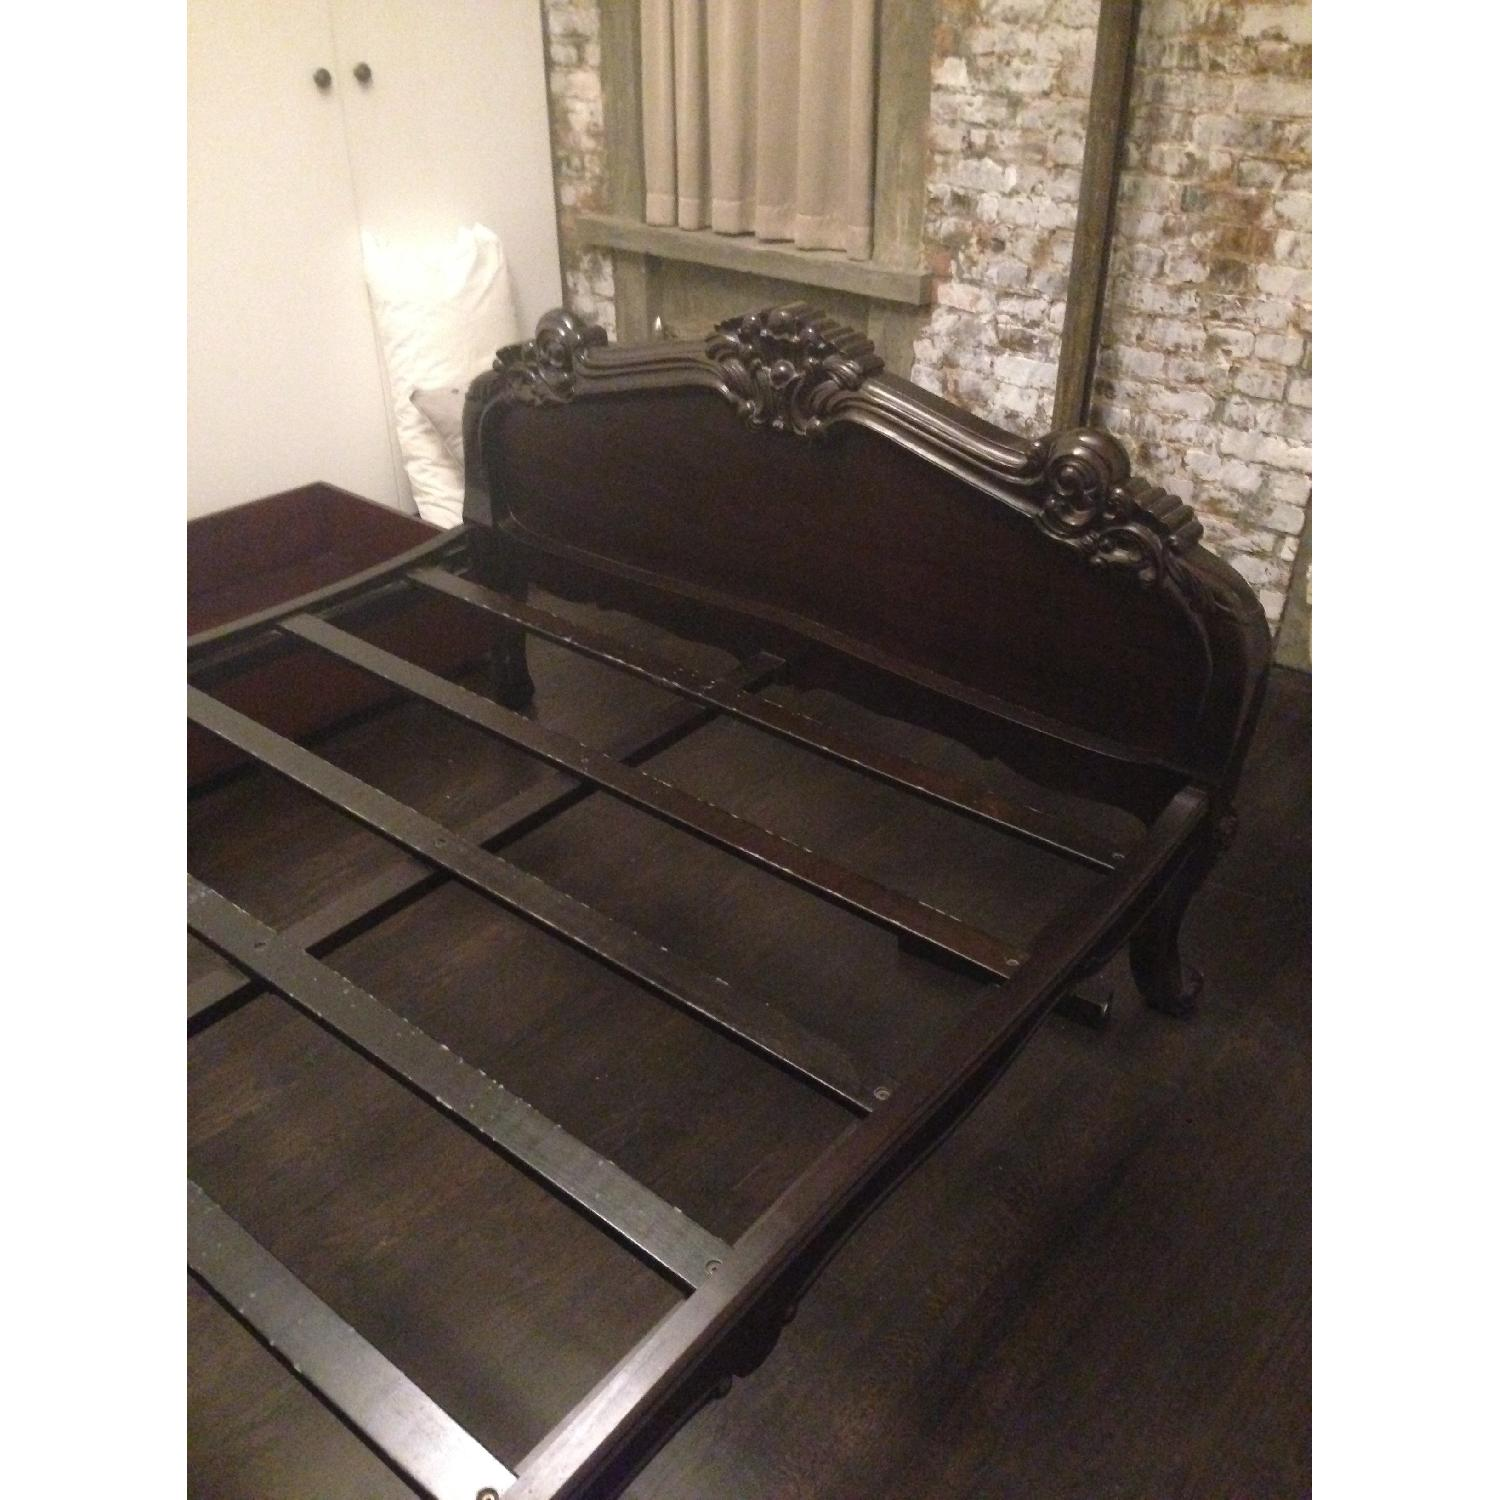 Brocade Home Wooden Queen Size Bed Frame w/ Carved Headboard/Footboard - image-7